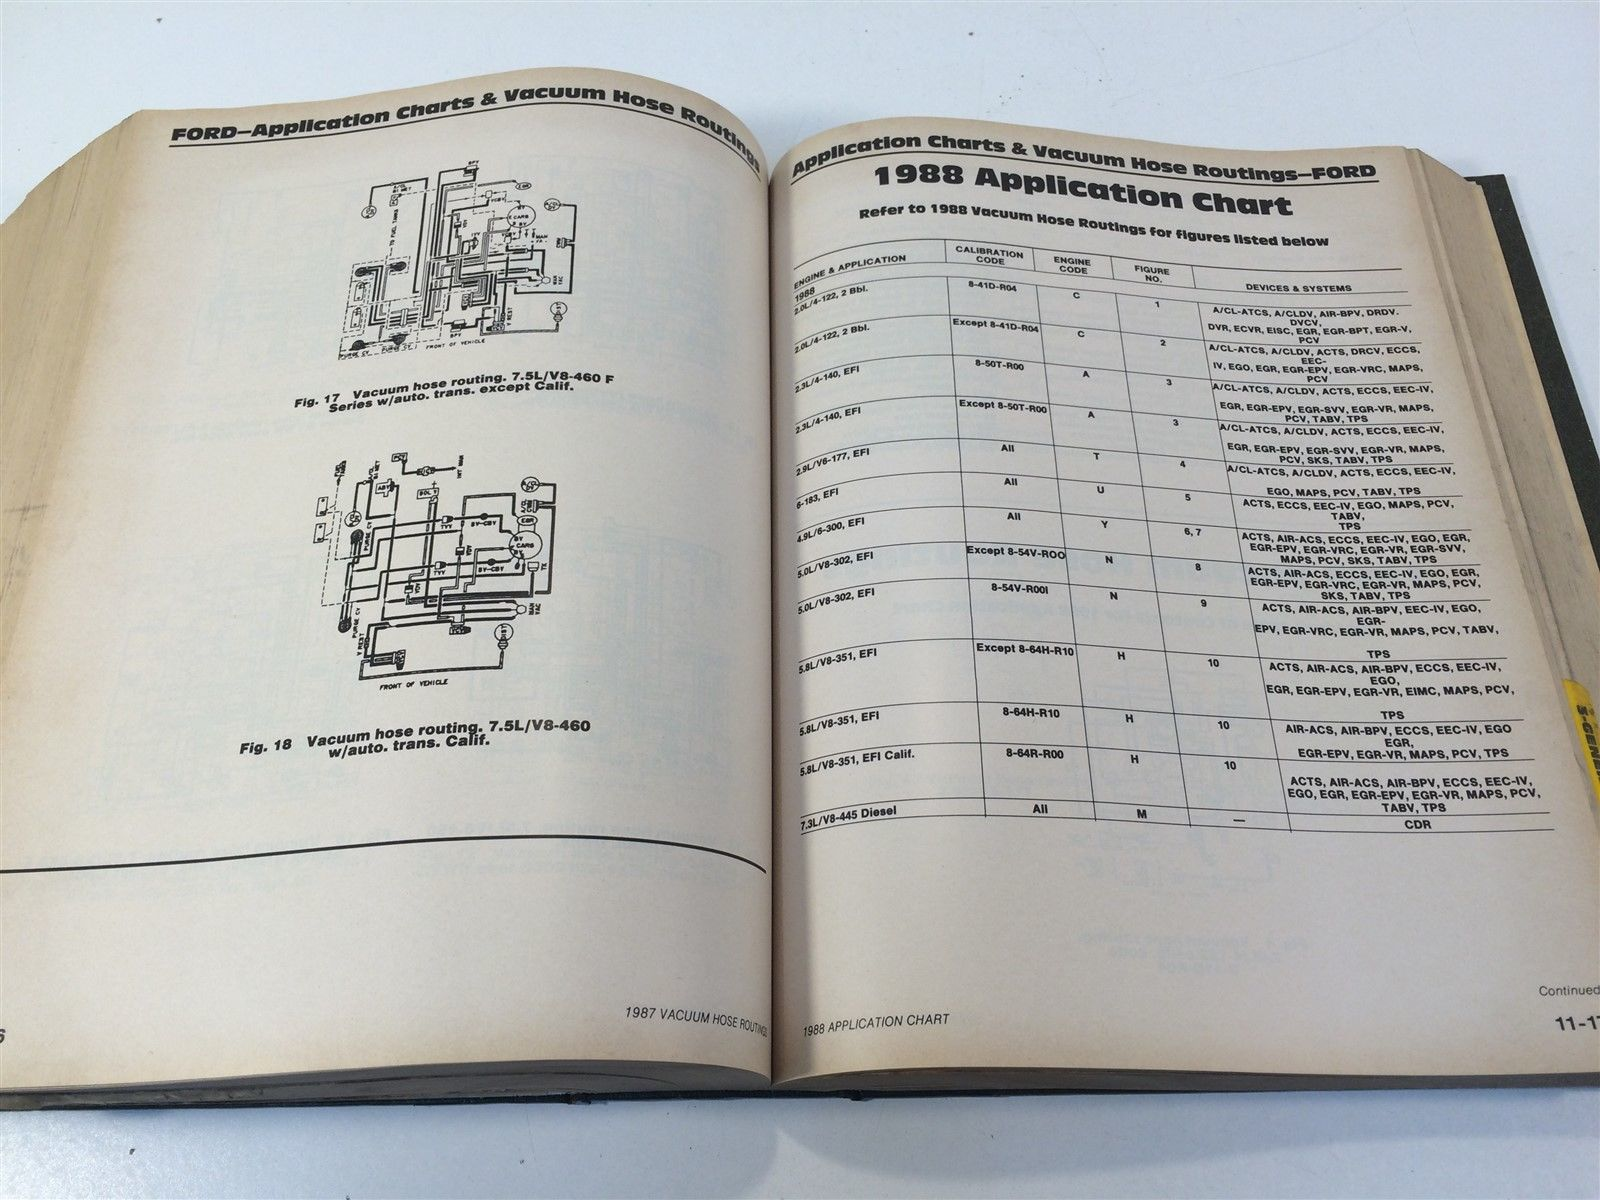 Motor Truck Engine Tune Up Electronics Manual 5th Edition 1986-91 Trade Edition